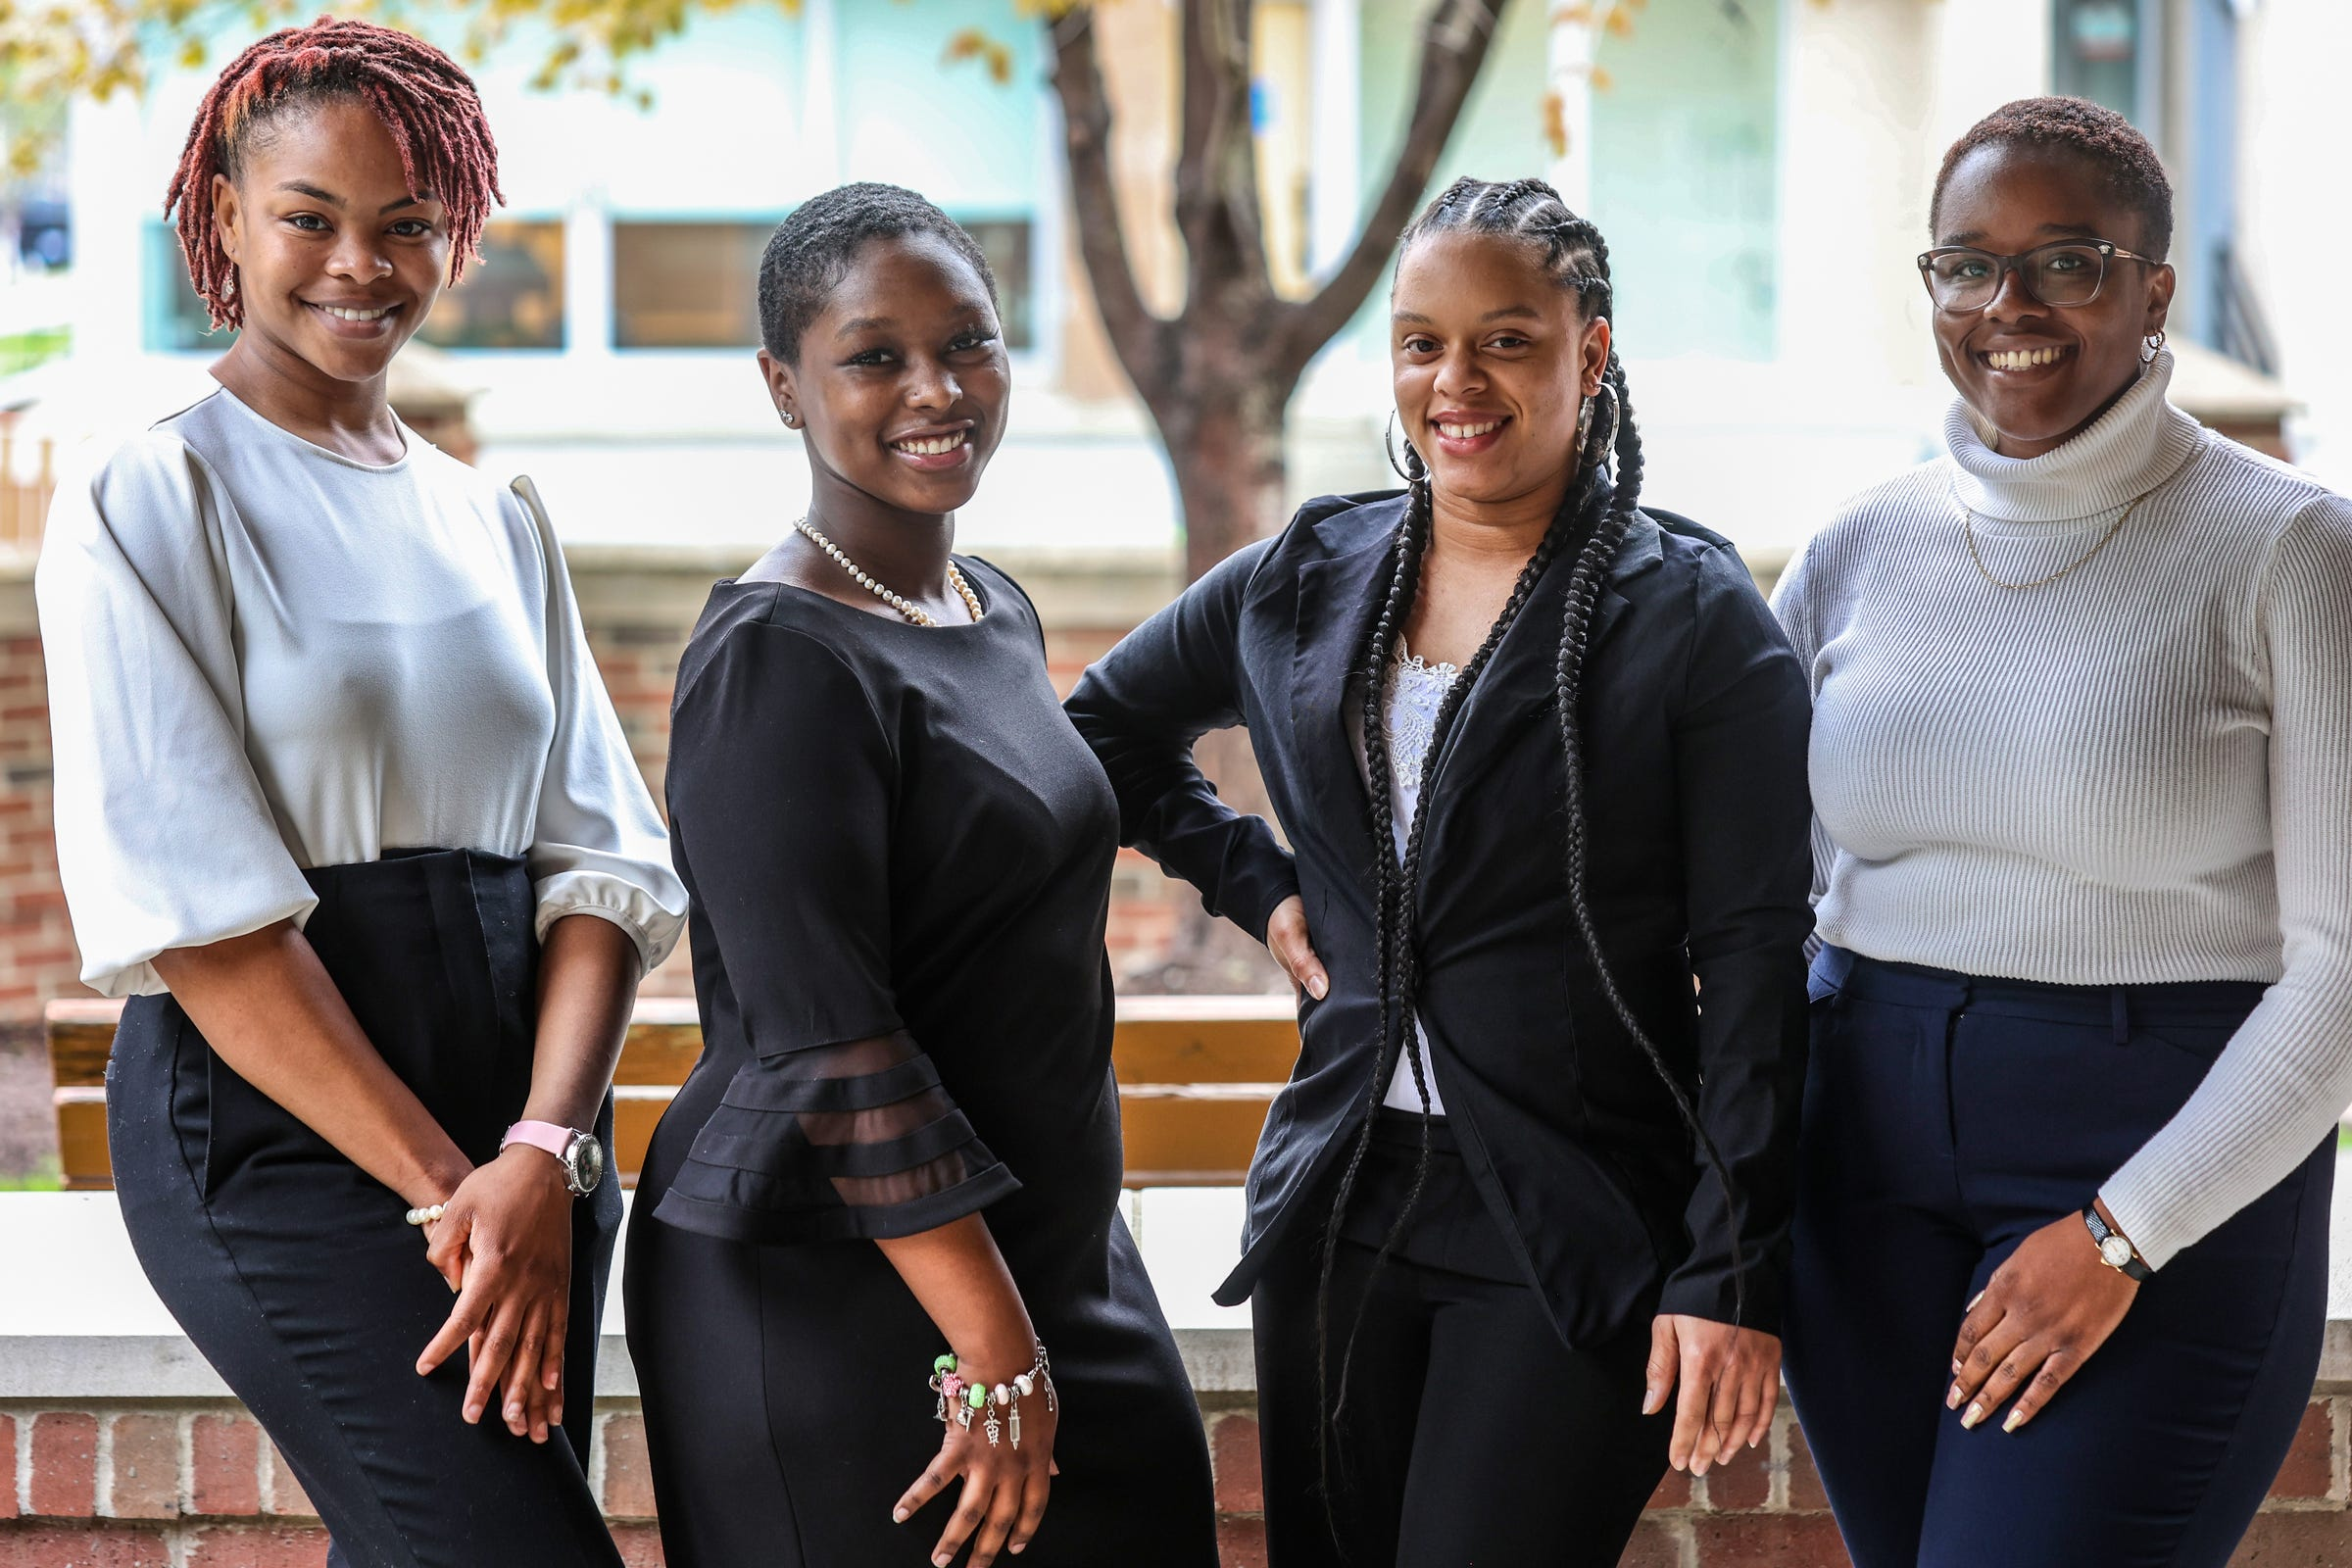 Wayne State University Students Arnell Kinney, 21, of Detroit; Nia Anderson, 23, of Detroit; Dominique Jenkins, 28, of Detroit and Sydni Alexis Elebra, 20, of Detroit are recipients of the Jessie P. Slaton Scholarship awarded by the Elliottorian Business and Professional Woman's Club and are photographed at the Village of Brush Park Manor Paradise Valley in Detroit on April 29, 2021. The the Elliottorian Business and Professional Women's Club is the first club of Black business women in Detroit and Michigan and was founded in 1928.